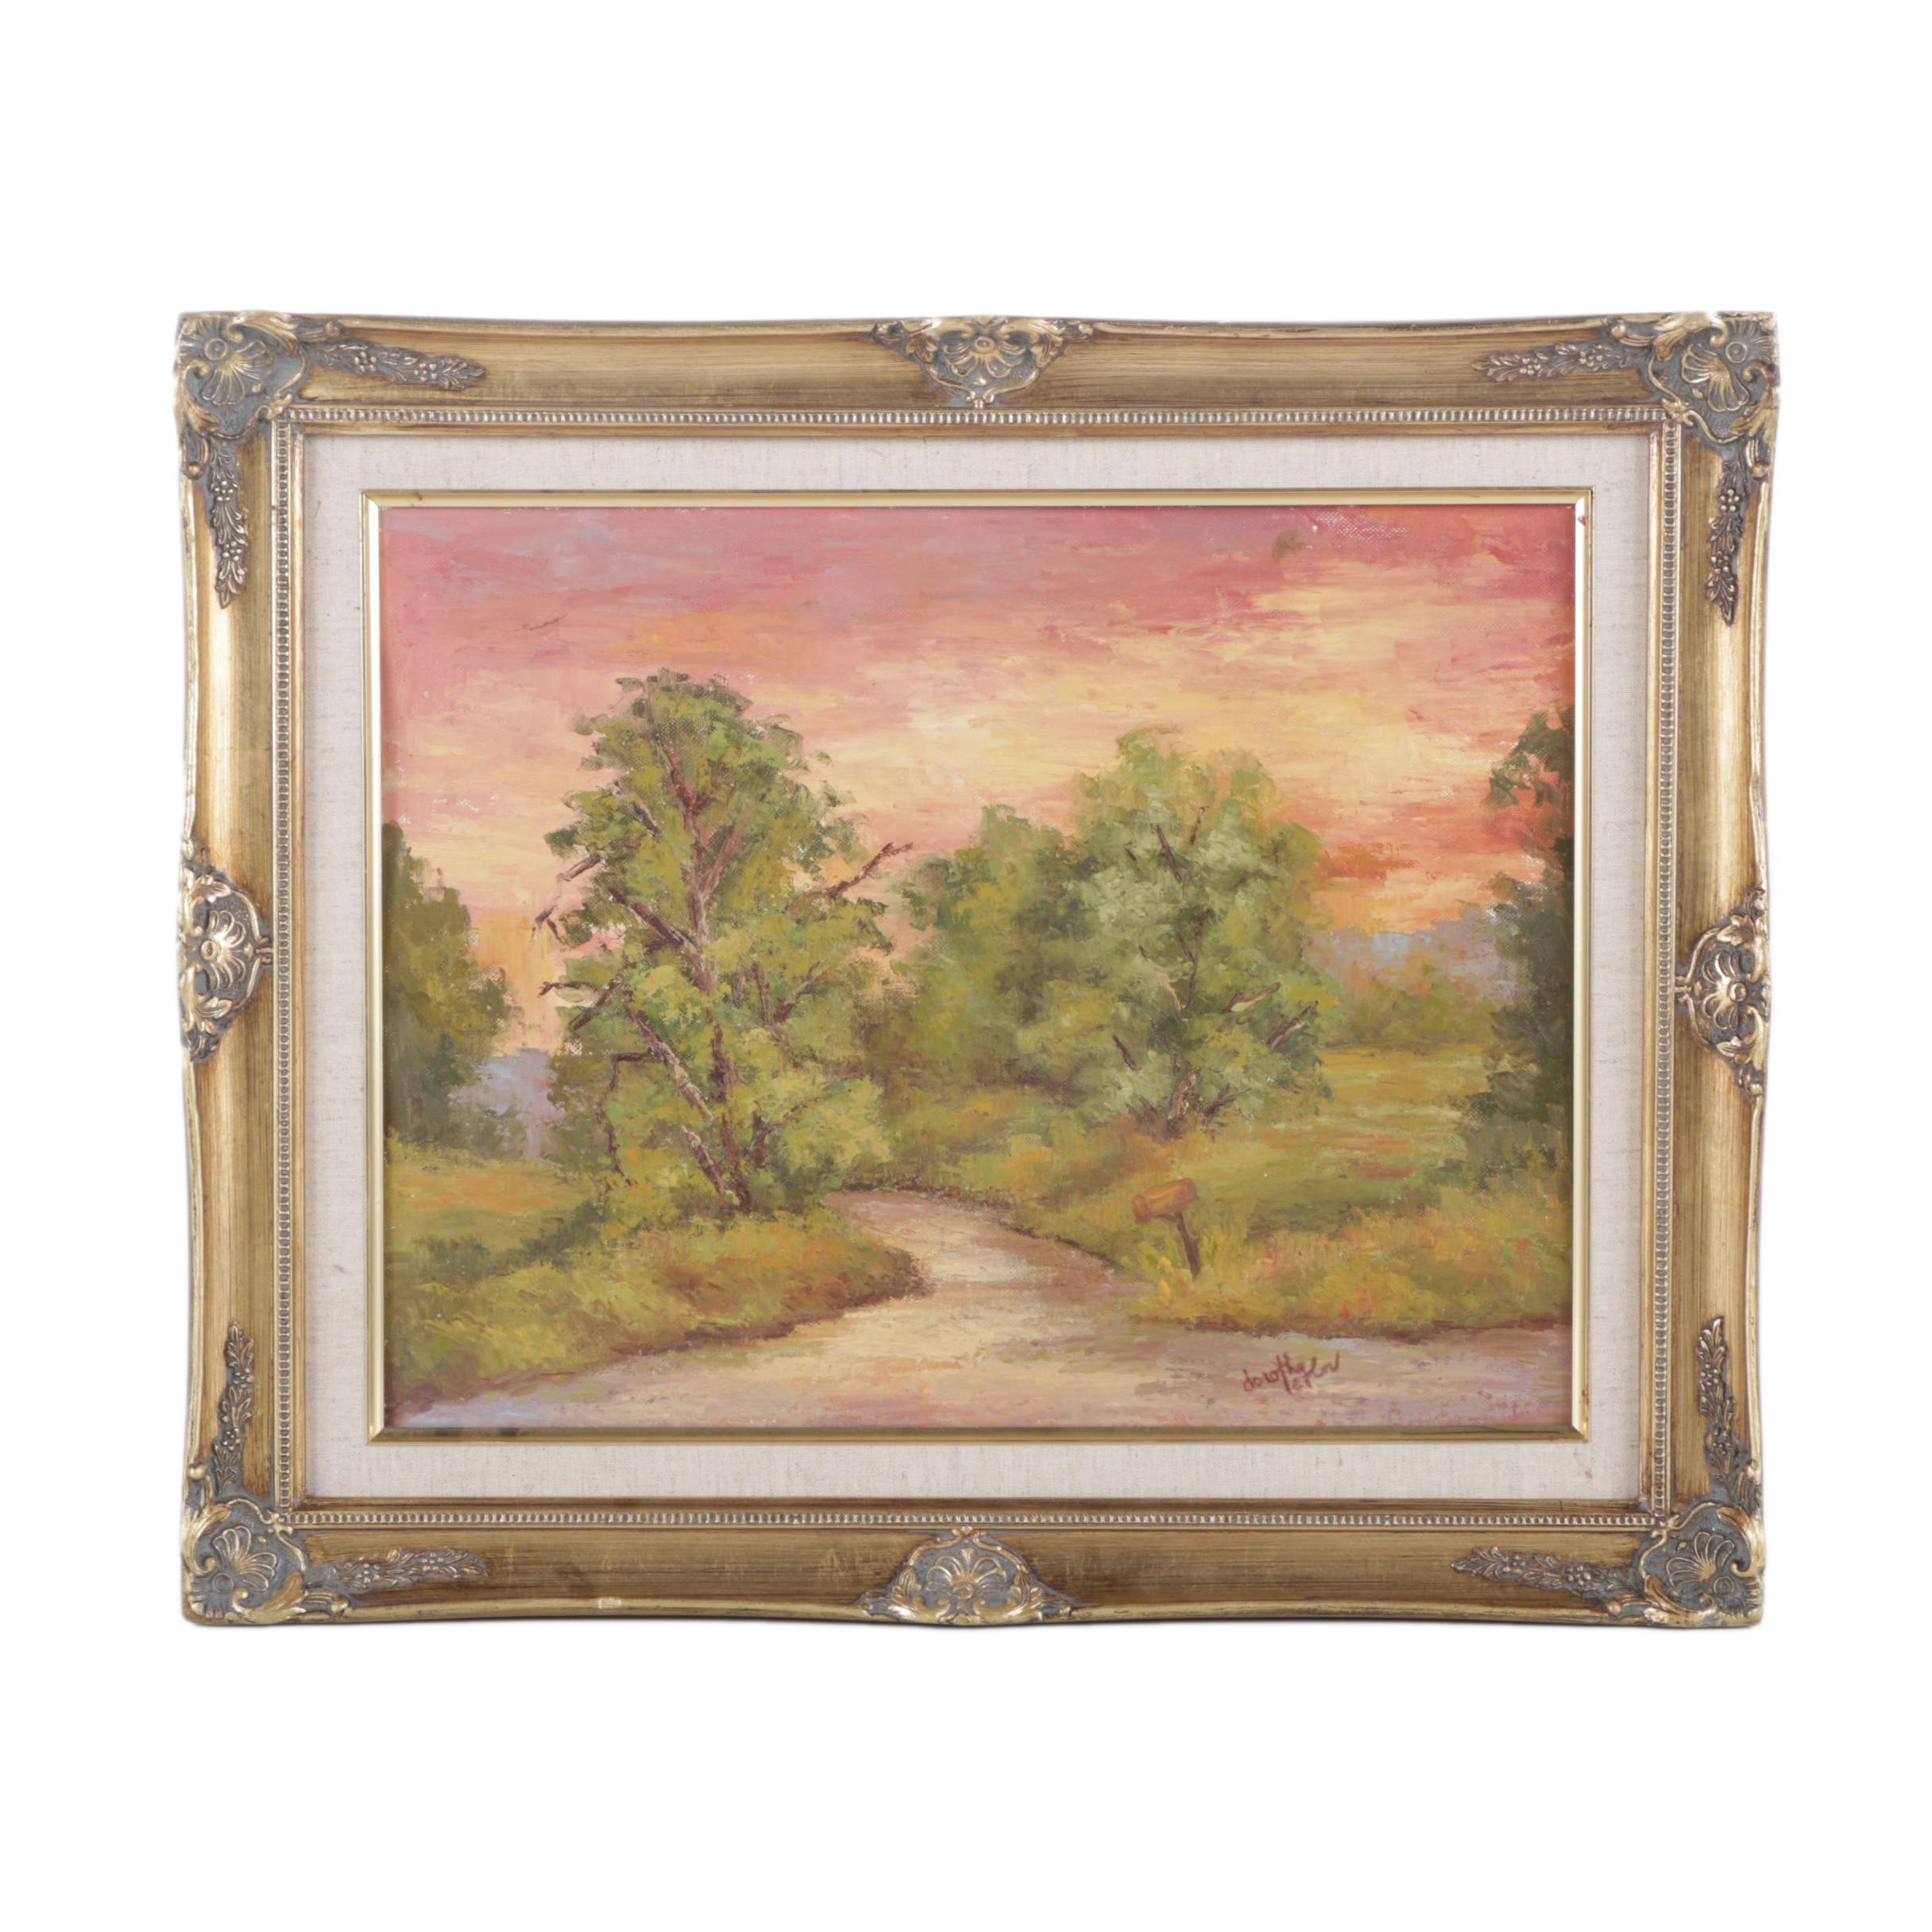 Dorothy Laflor Oil Painting on Canvas Board of Wooded Landscape